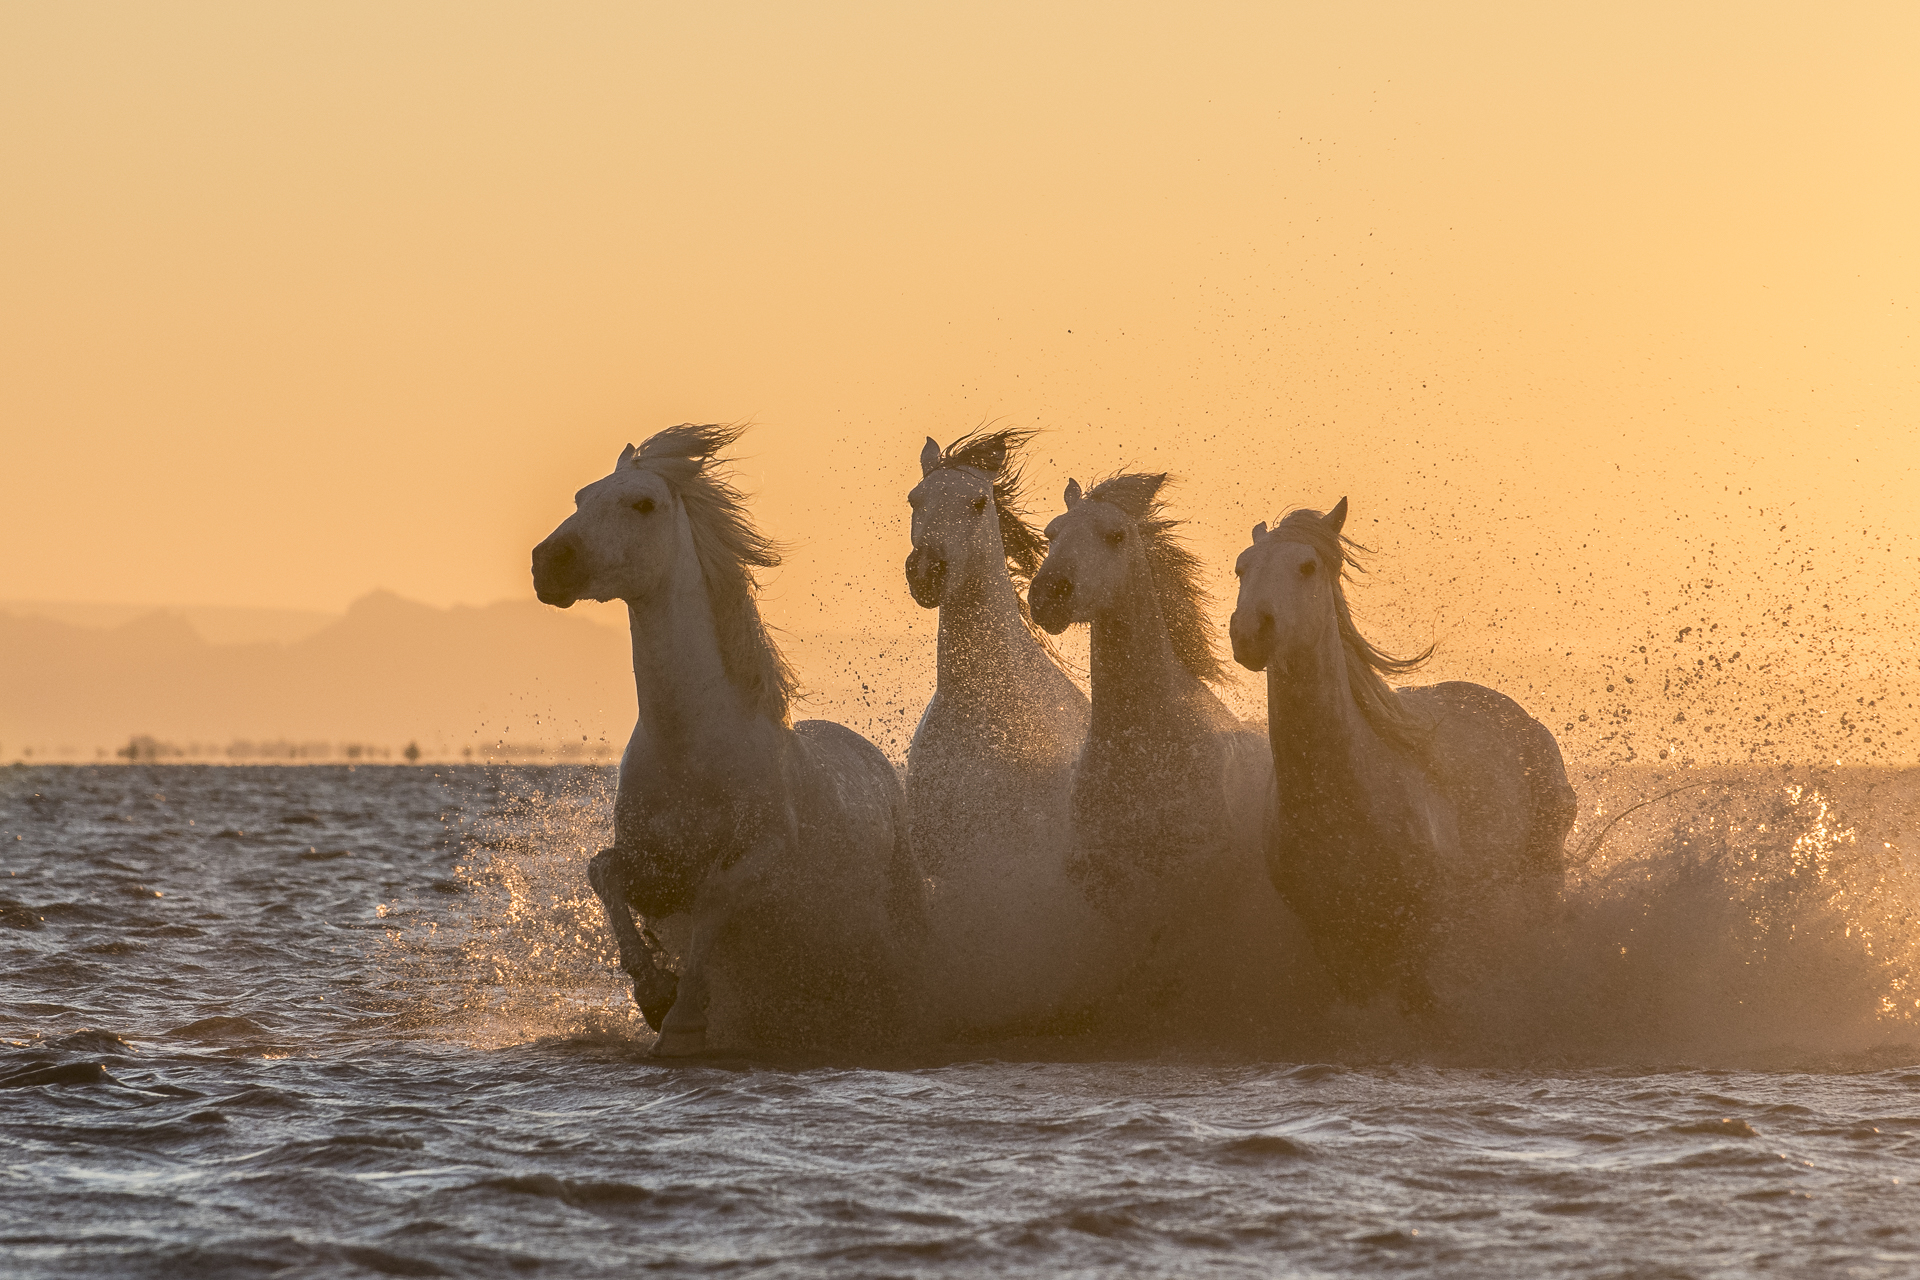 Horses running in Mediterranean surf at sunset. Parc naturel régional de Camargue. France.